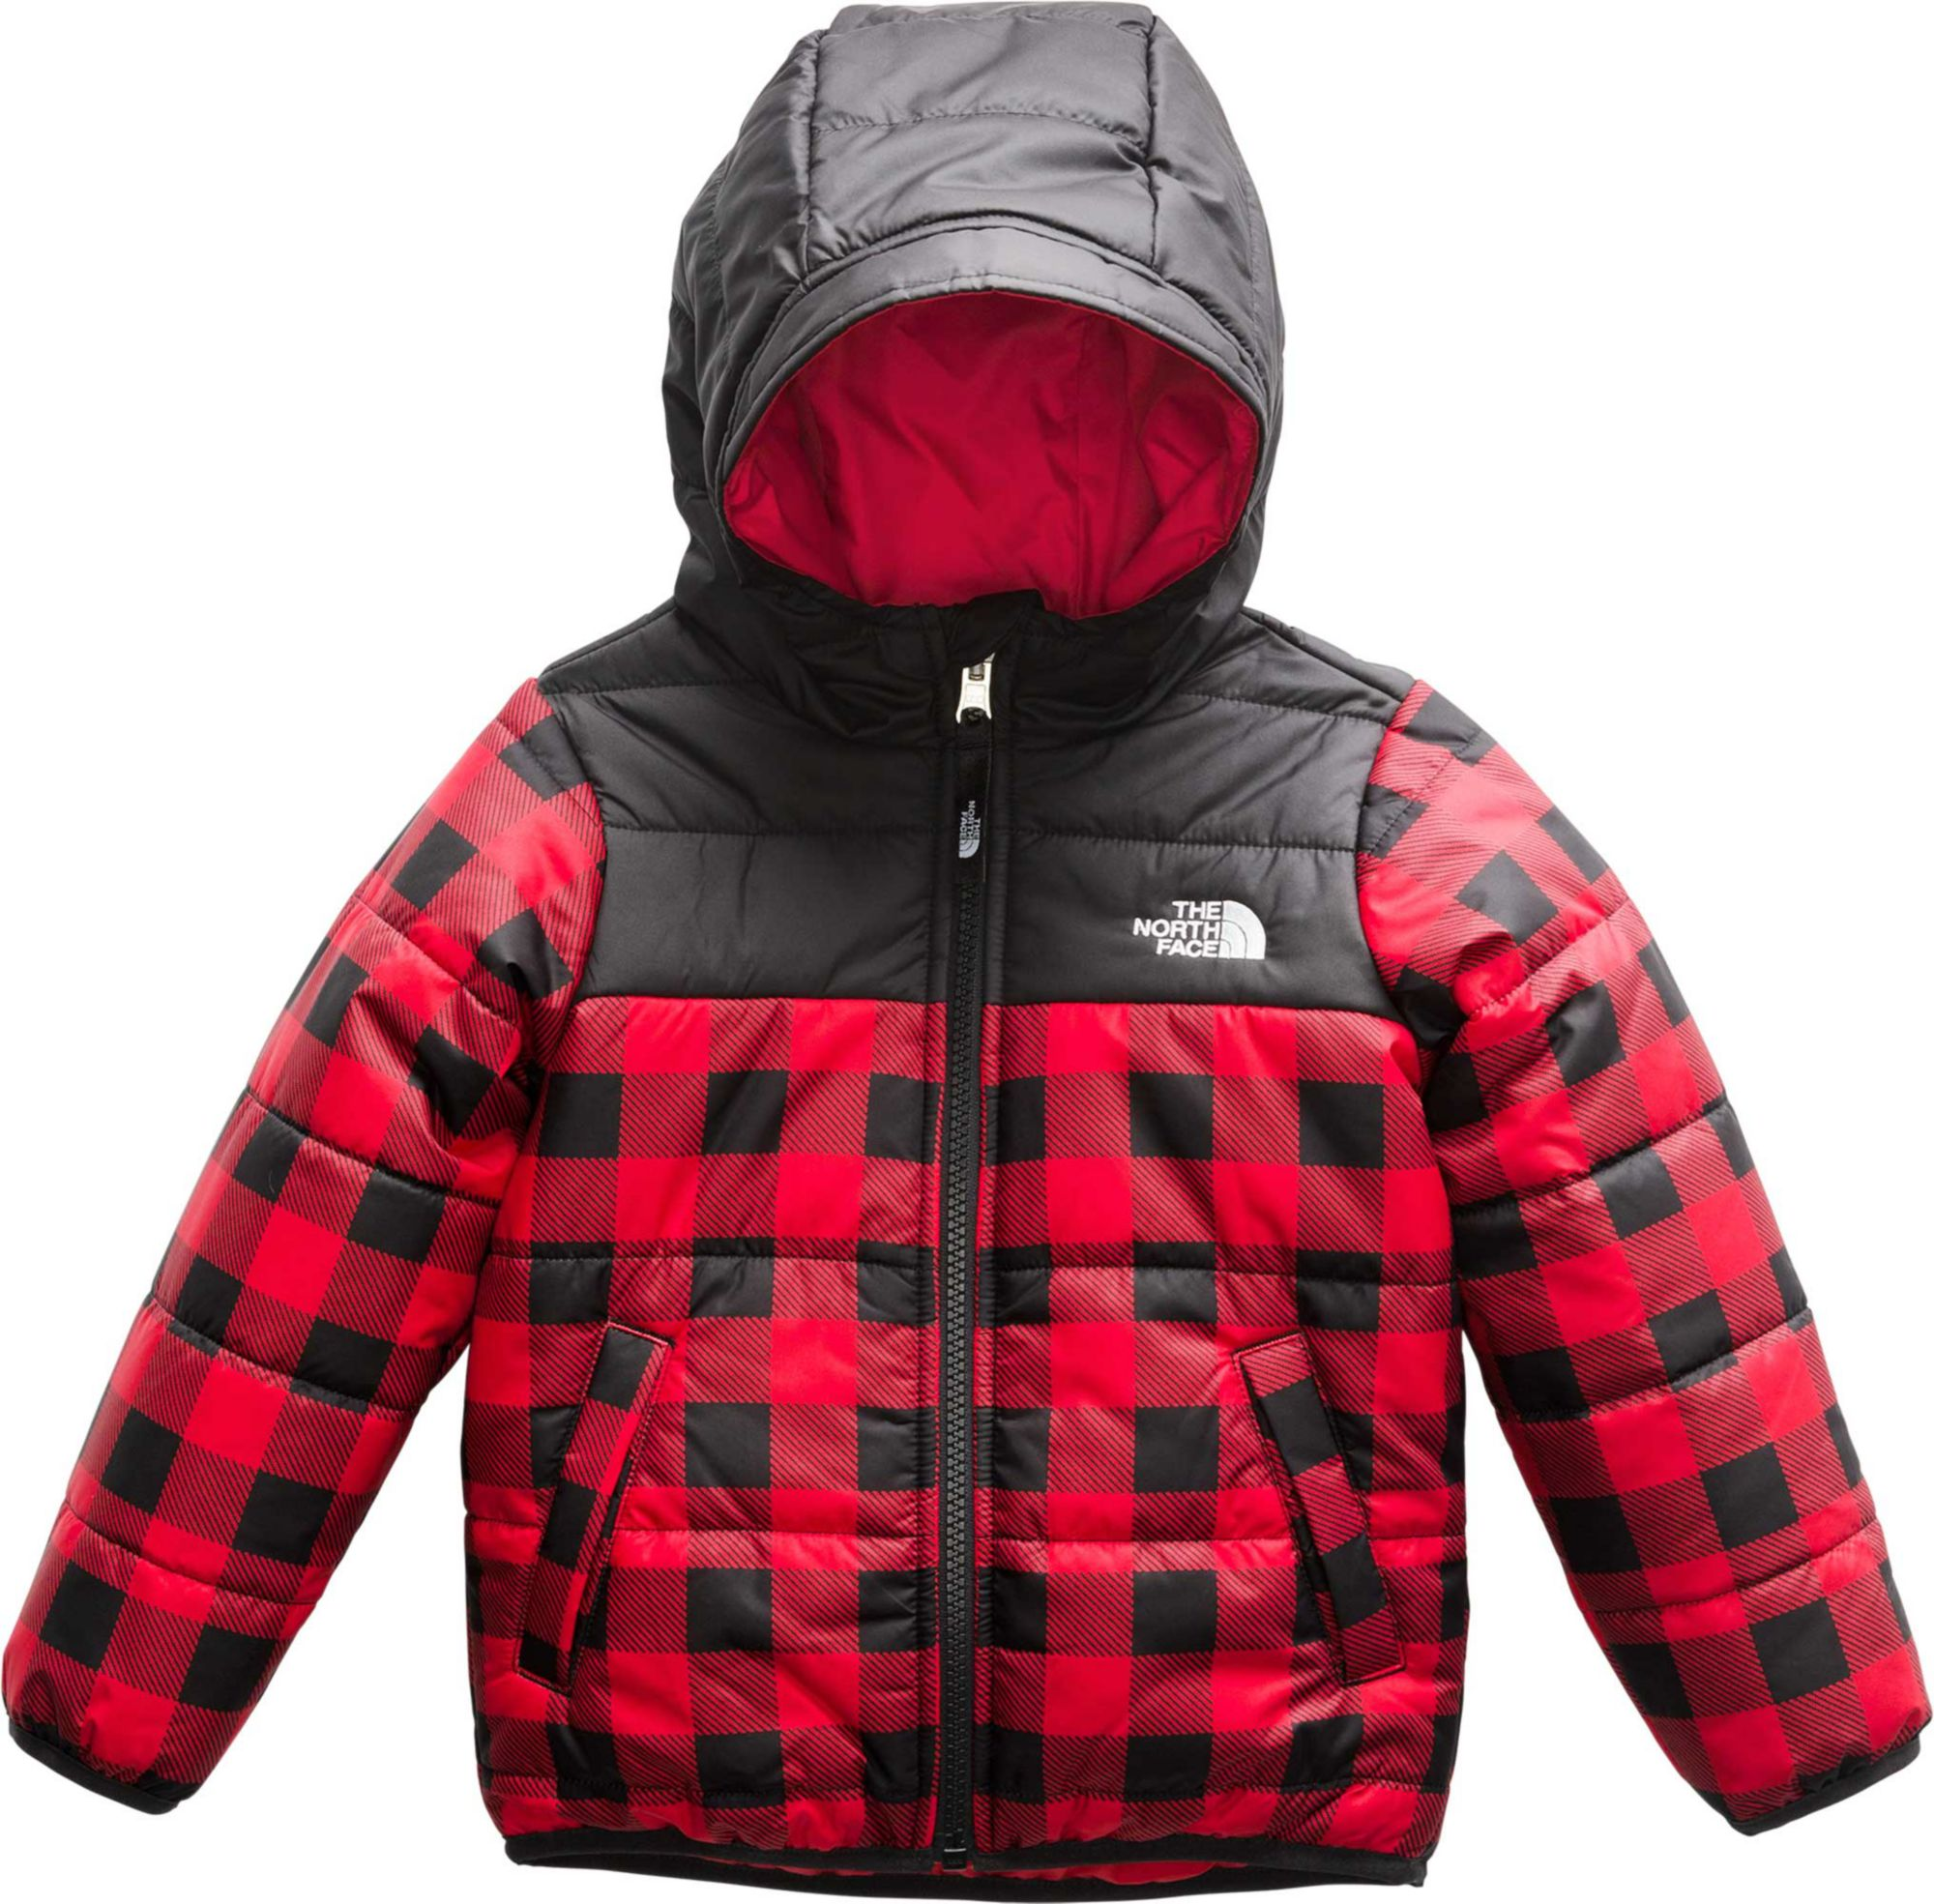 f82cdc83b The North Face Toddler Boys' Reversible Perrito Jacket in 2019 ...